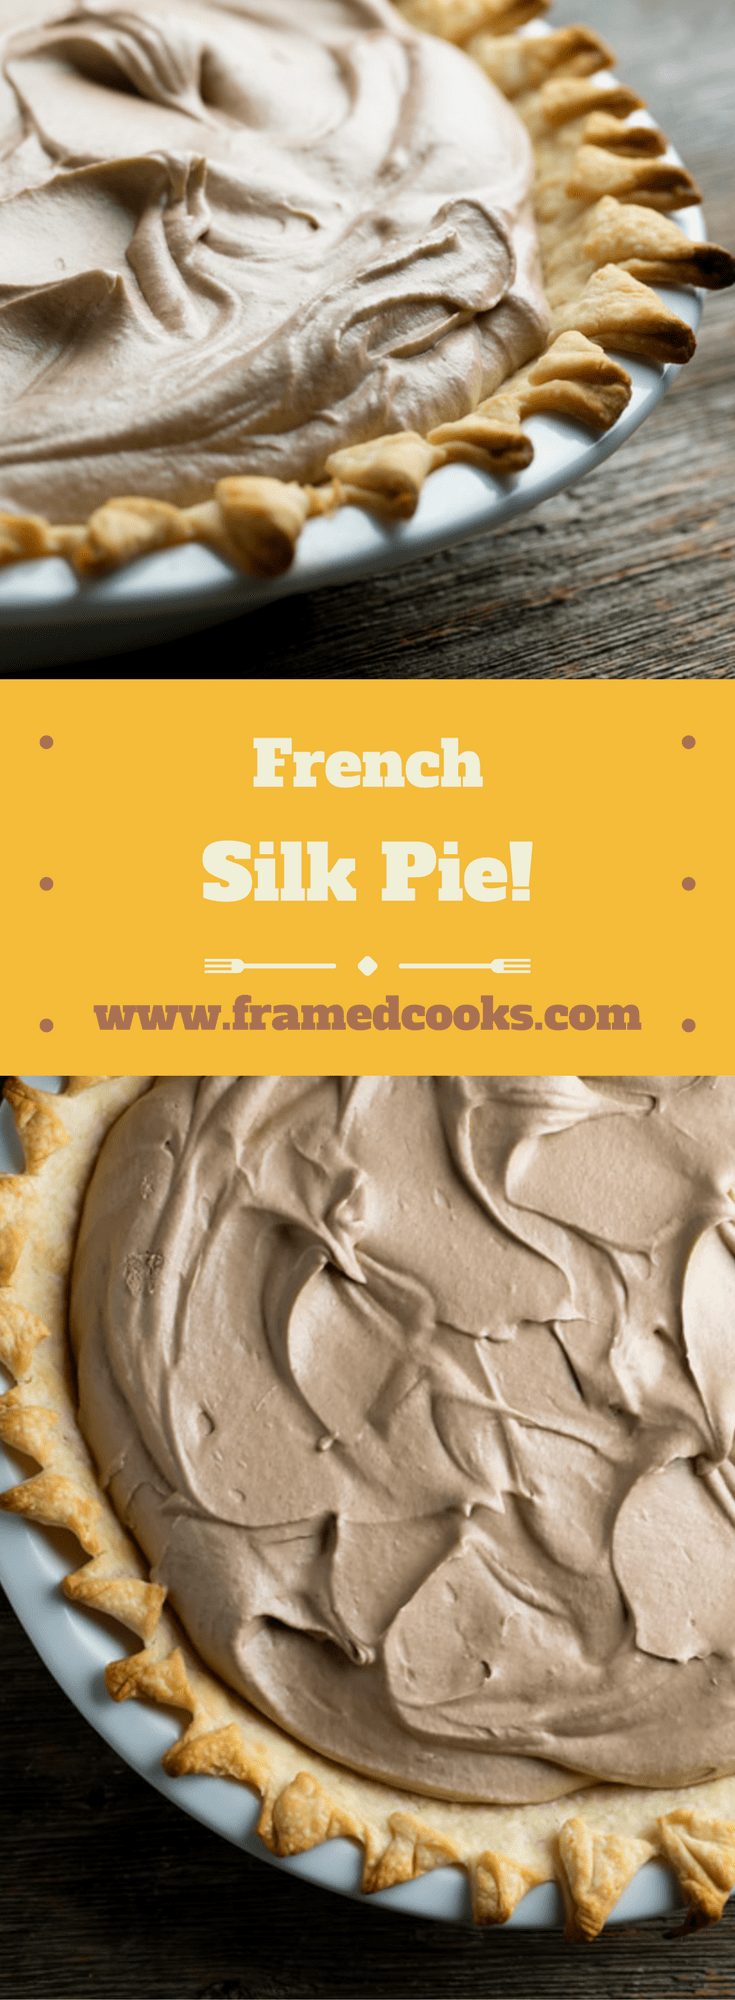 Easy, creamy, dreamy, chocolate deliciousness is all yours in this recipe for French Silk Pie!  This quick dessert is perfect for the holidays.